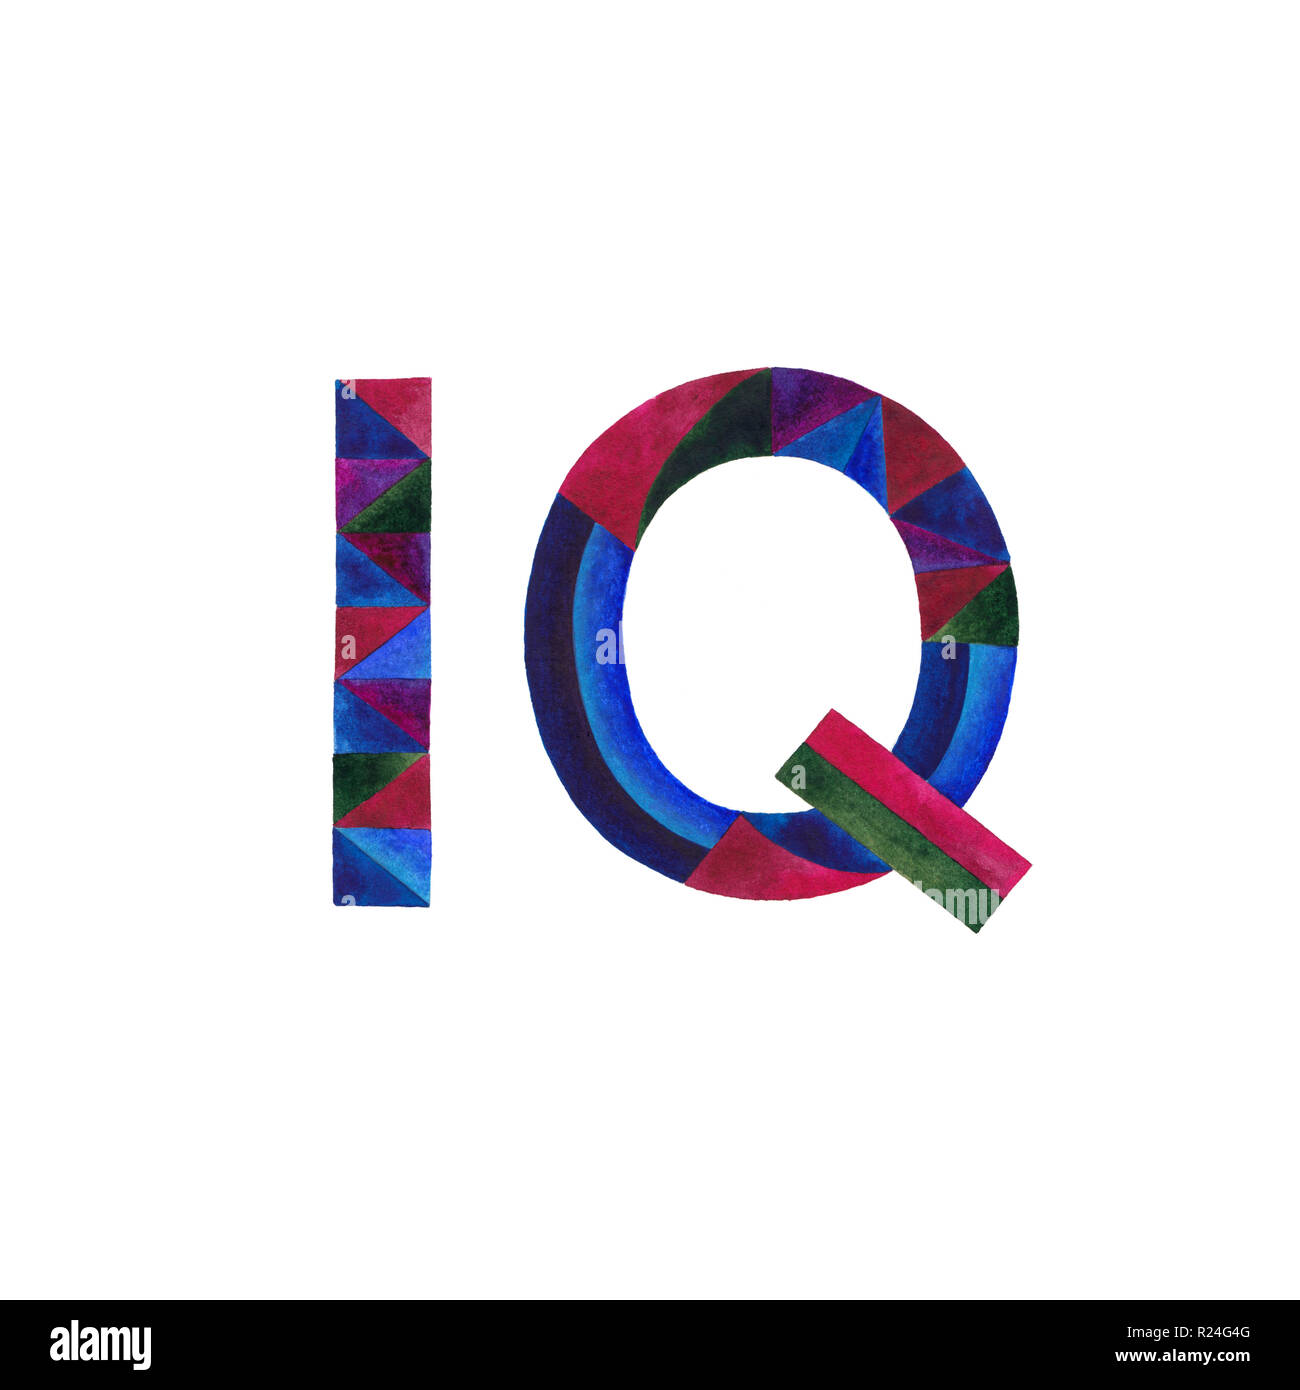 IQ watercolor hand painted sign illustration. Intelligence quotient symbol. - Stock Image